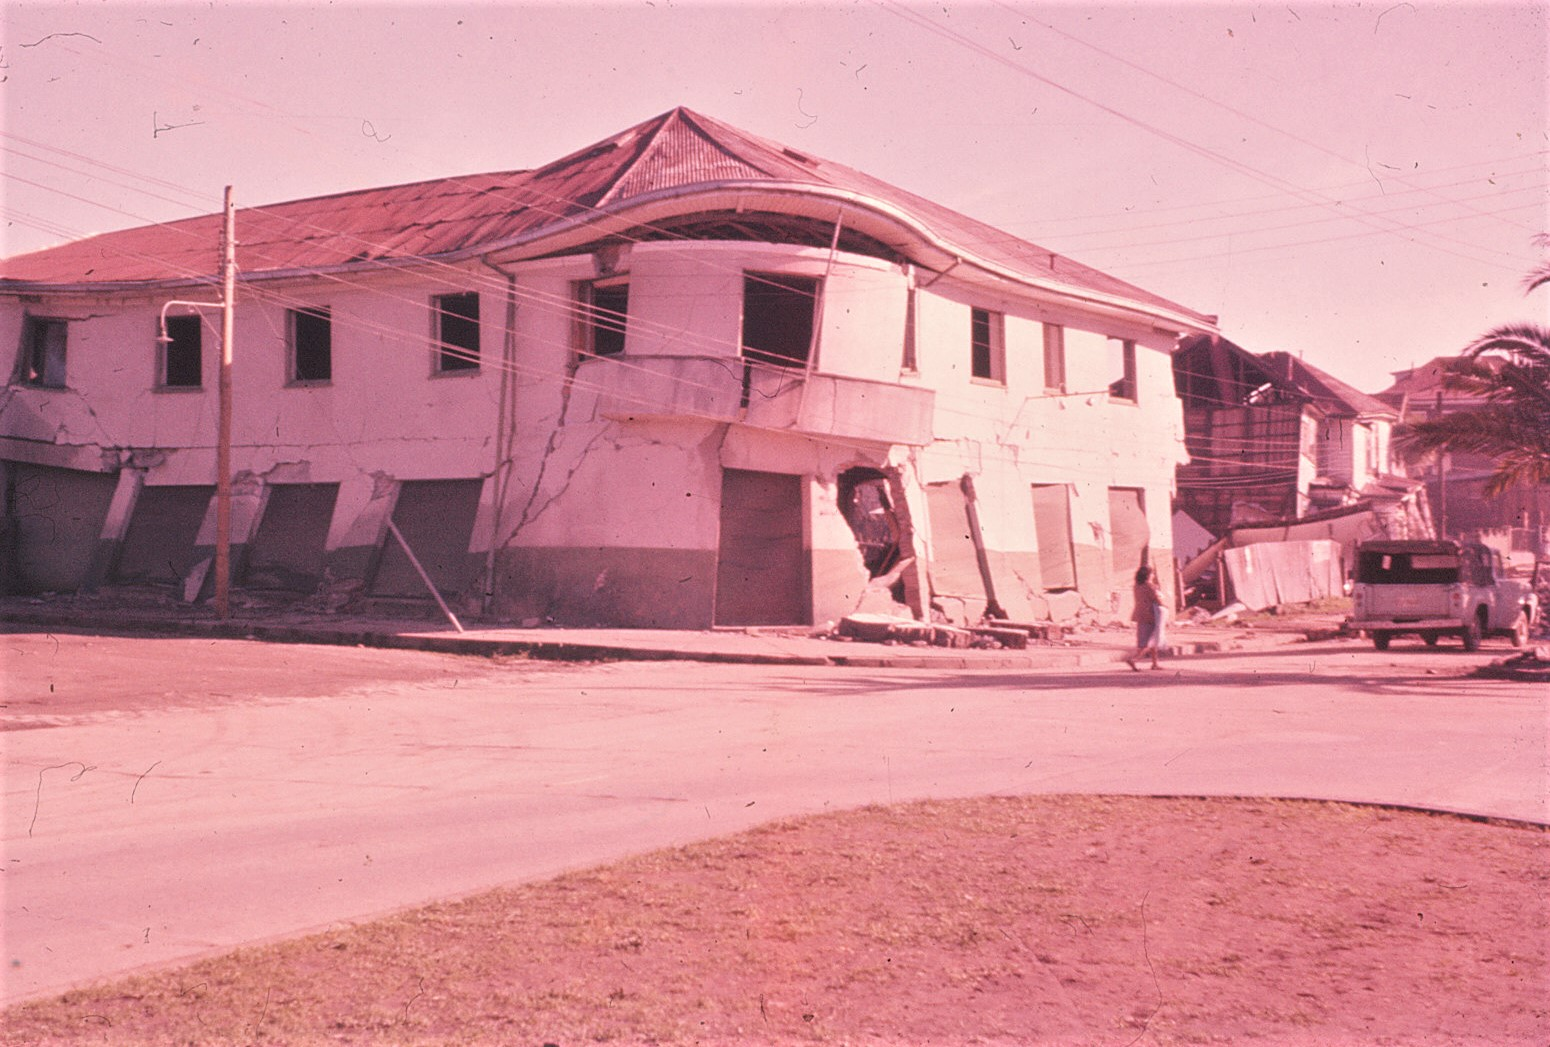 Enterreno - Fotos históricas de chile - fotos antiguas de Chile - Terremoto Valdivia en 1960